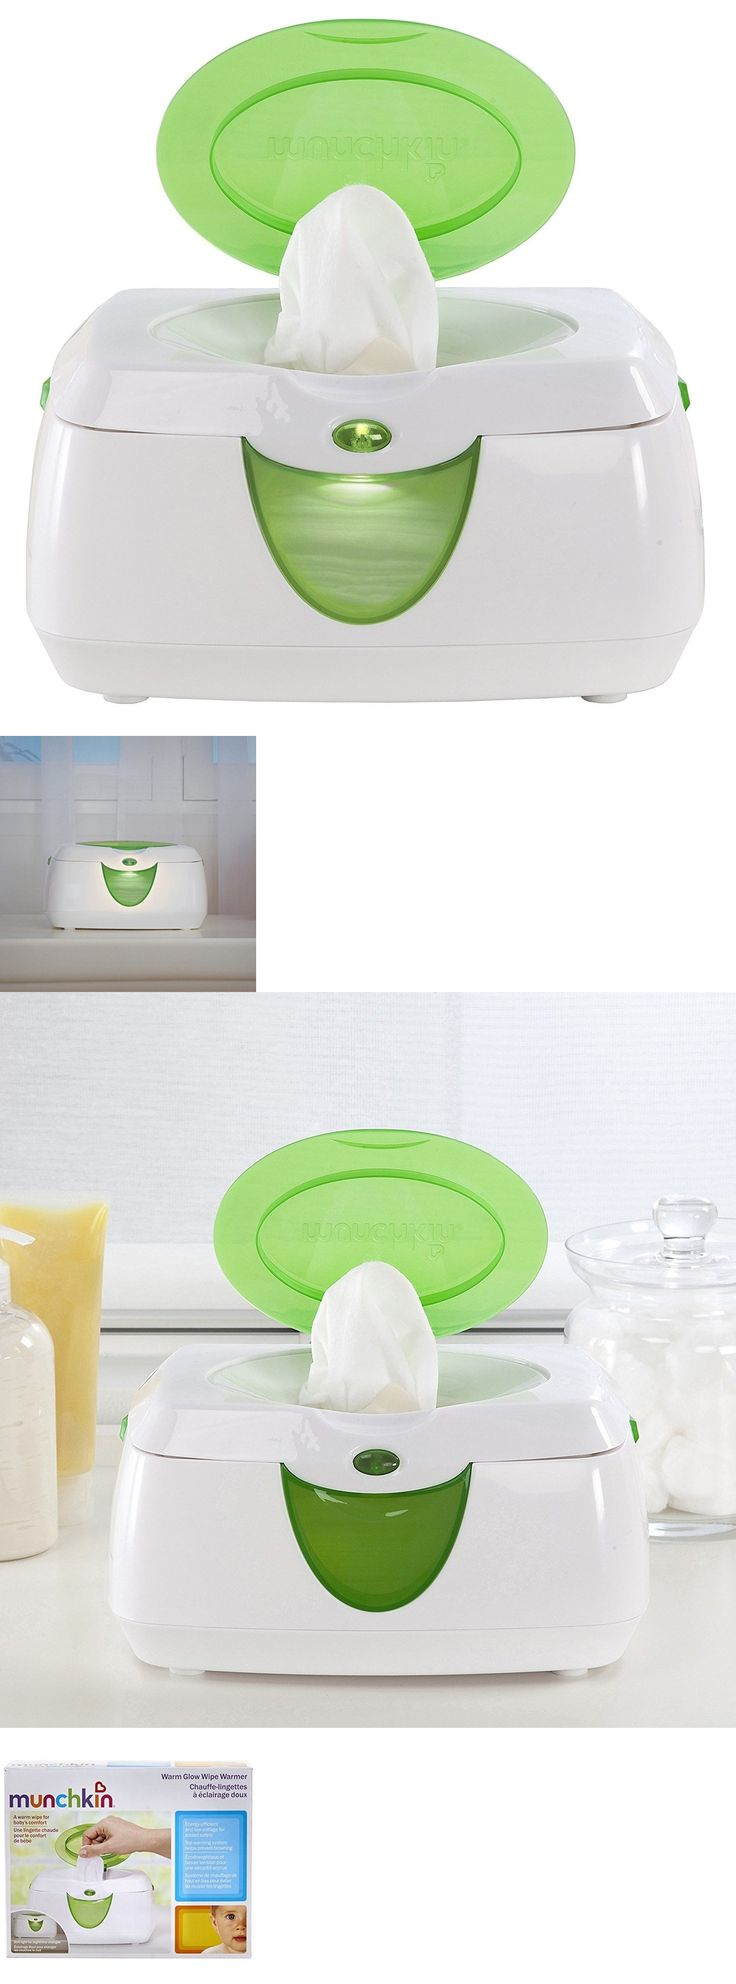 Baby Wipe Warmers 117017: Munchkin Warm Glow Wipe Warmer - Warm Wipe F Babys Comfort [Wipes Not Included] -> BUY IT NOW ONLY: $38.6 on eBay!